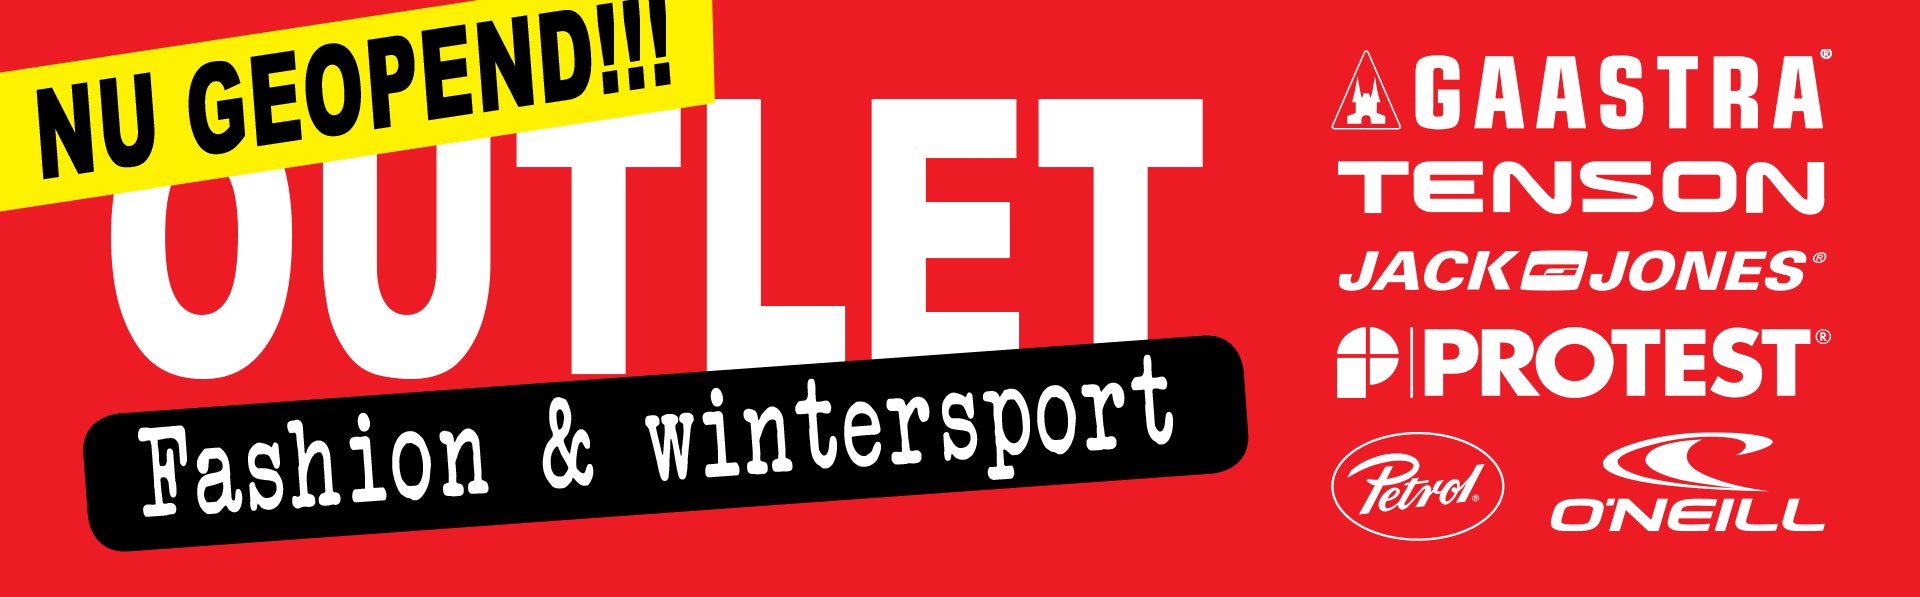 Nu geopend! Outlet Fashion & Wintersport